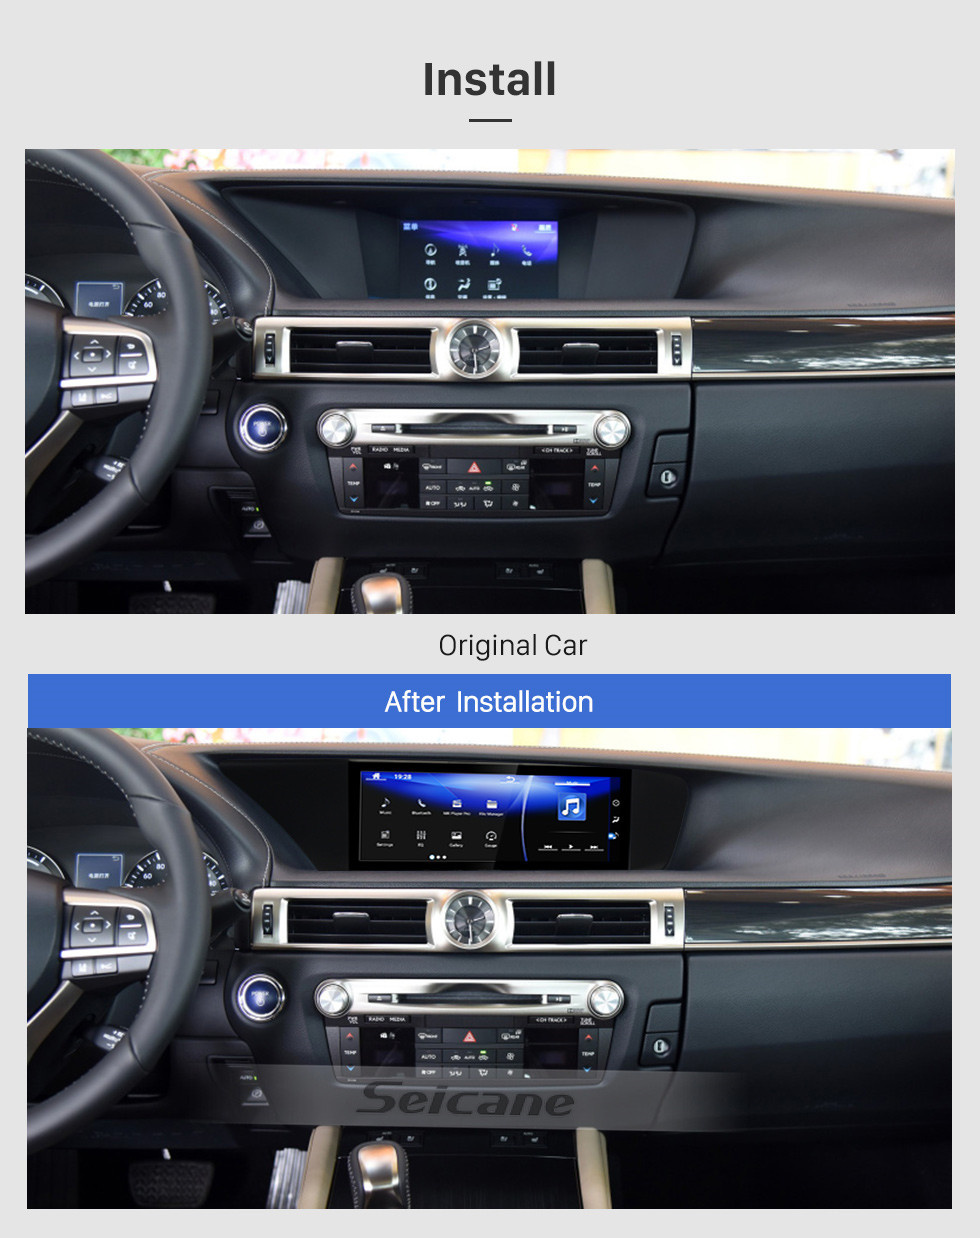 Seicane 12.3 inch for 2014 2015 2016 2017 LEXUS GS Radio Android 7.1 With GPS Navigation HD Touchscreen Bluetooth support Carplay Backup camera